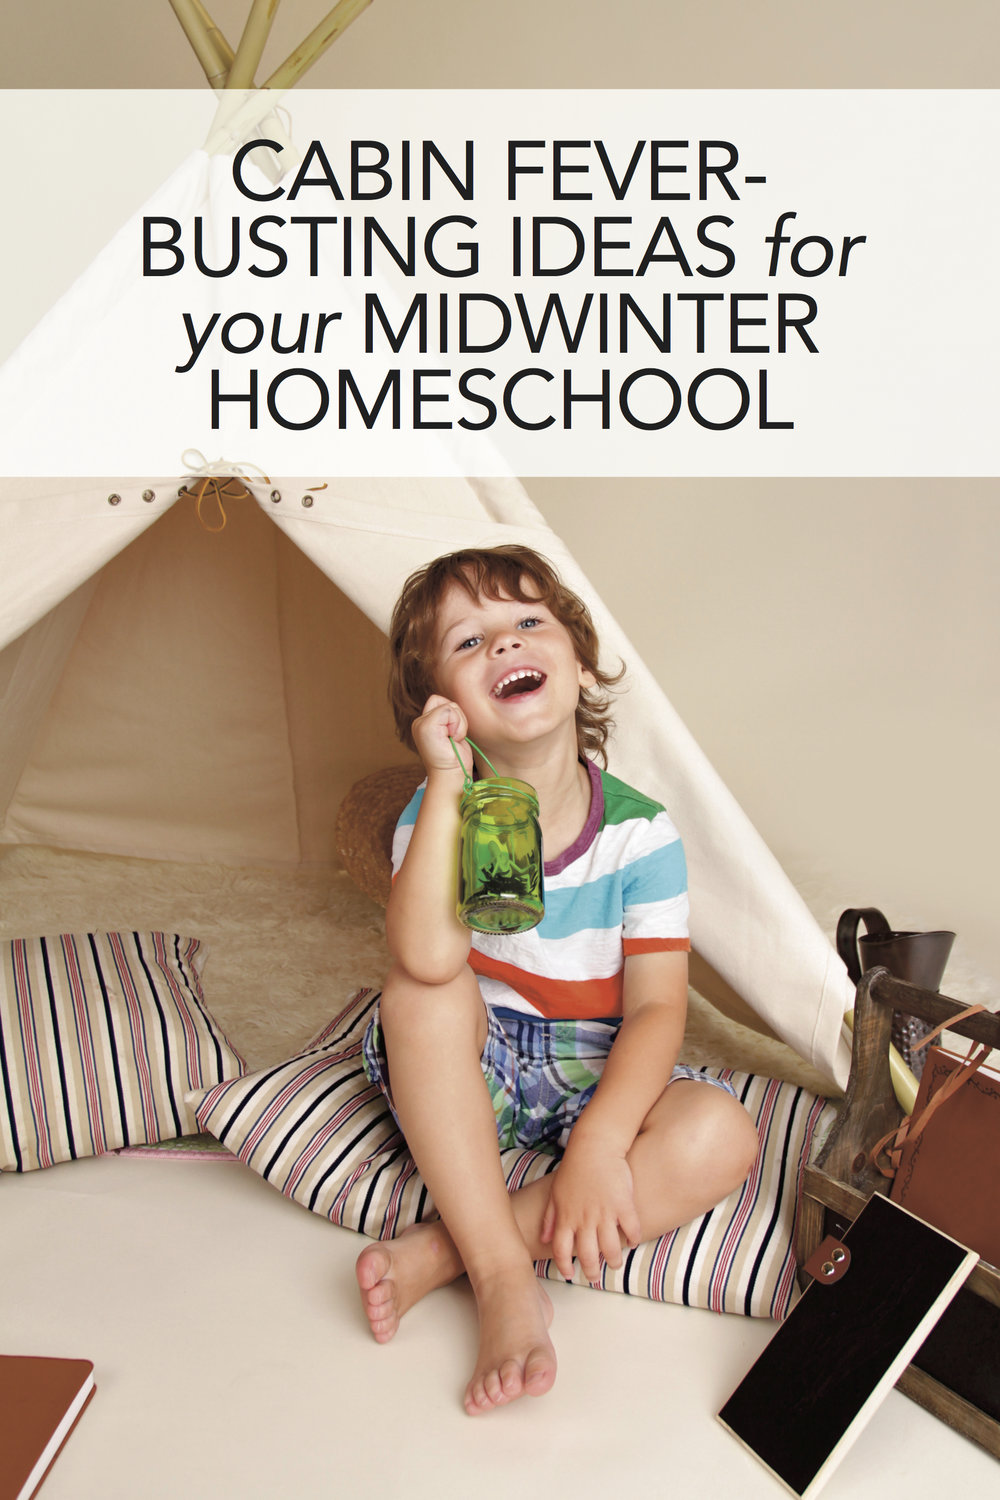 How to Beat Midwinter Cabin Fever in Your Homeschool